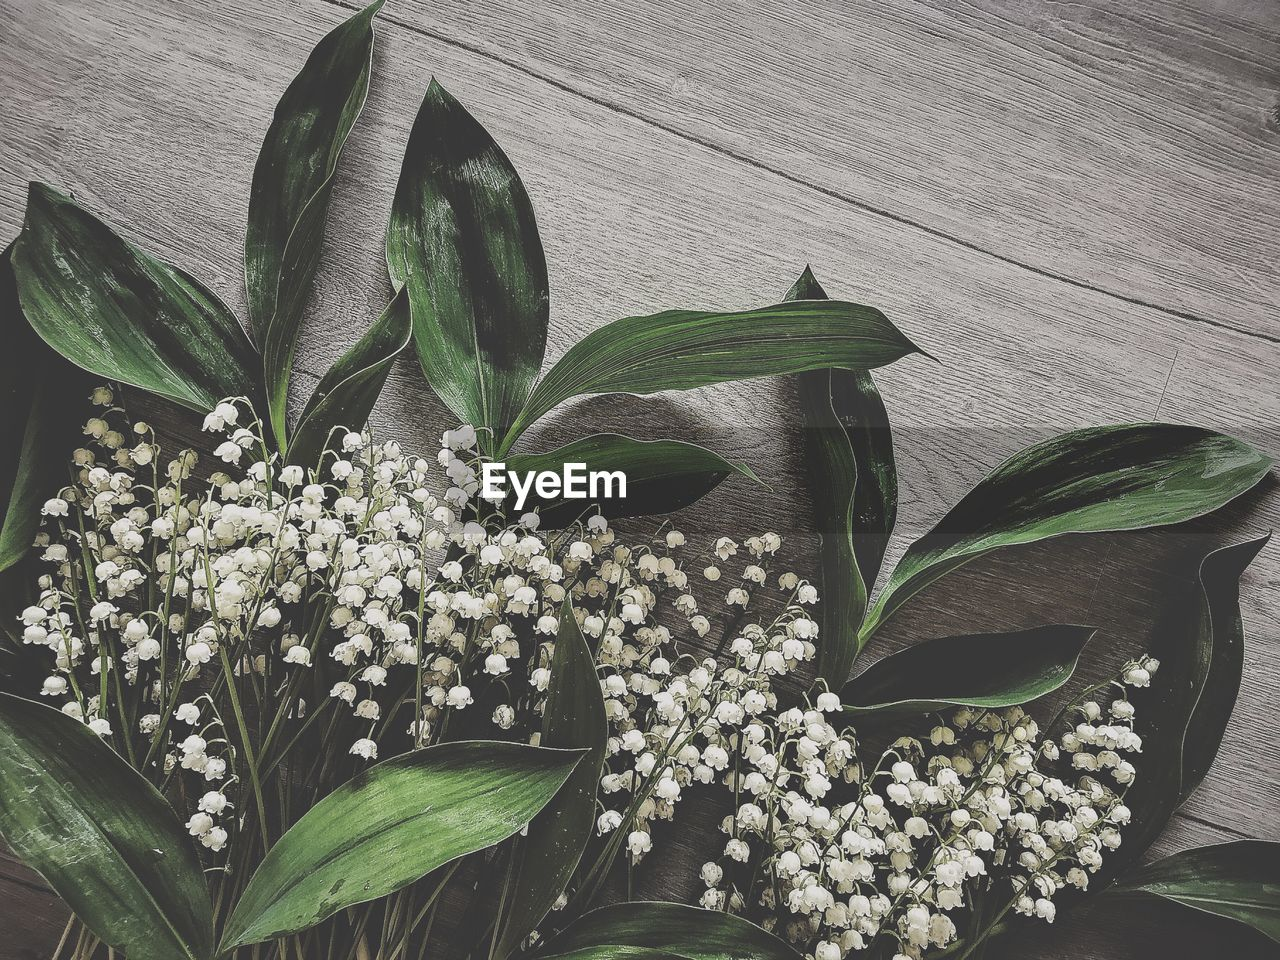 leaf, plant part, plant, flower, flowering plant, beauty in nature, growth, nature, freshness, green color, no people, fragility, vulnerability, close-up, indoors, flower head, white color, potted plant, wood - material, flower arrangement, bouquet